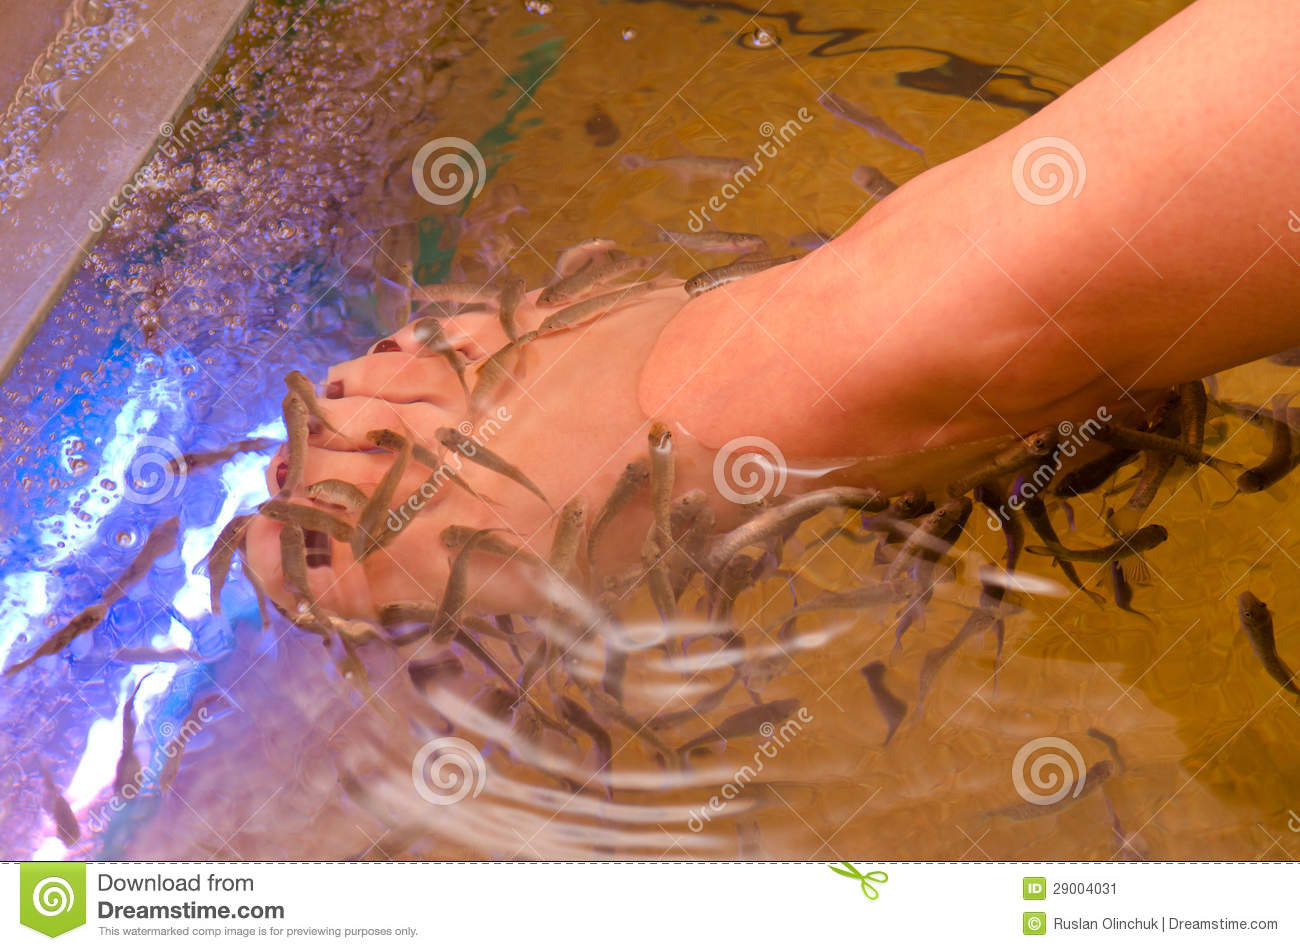 Fish spa pedicure stock image image 29004031 for Fish pedicure price